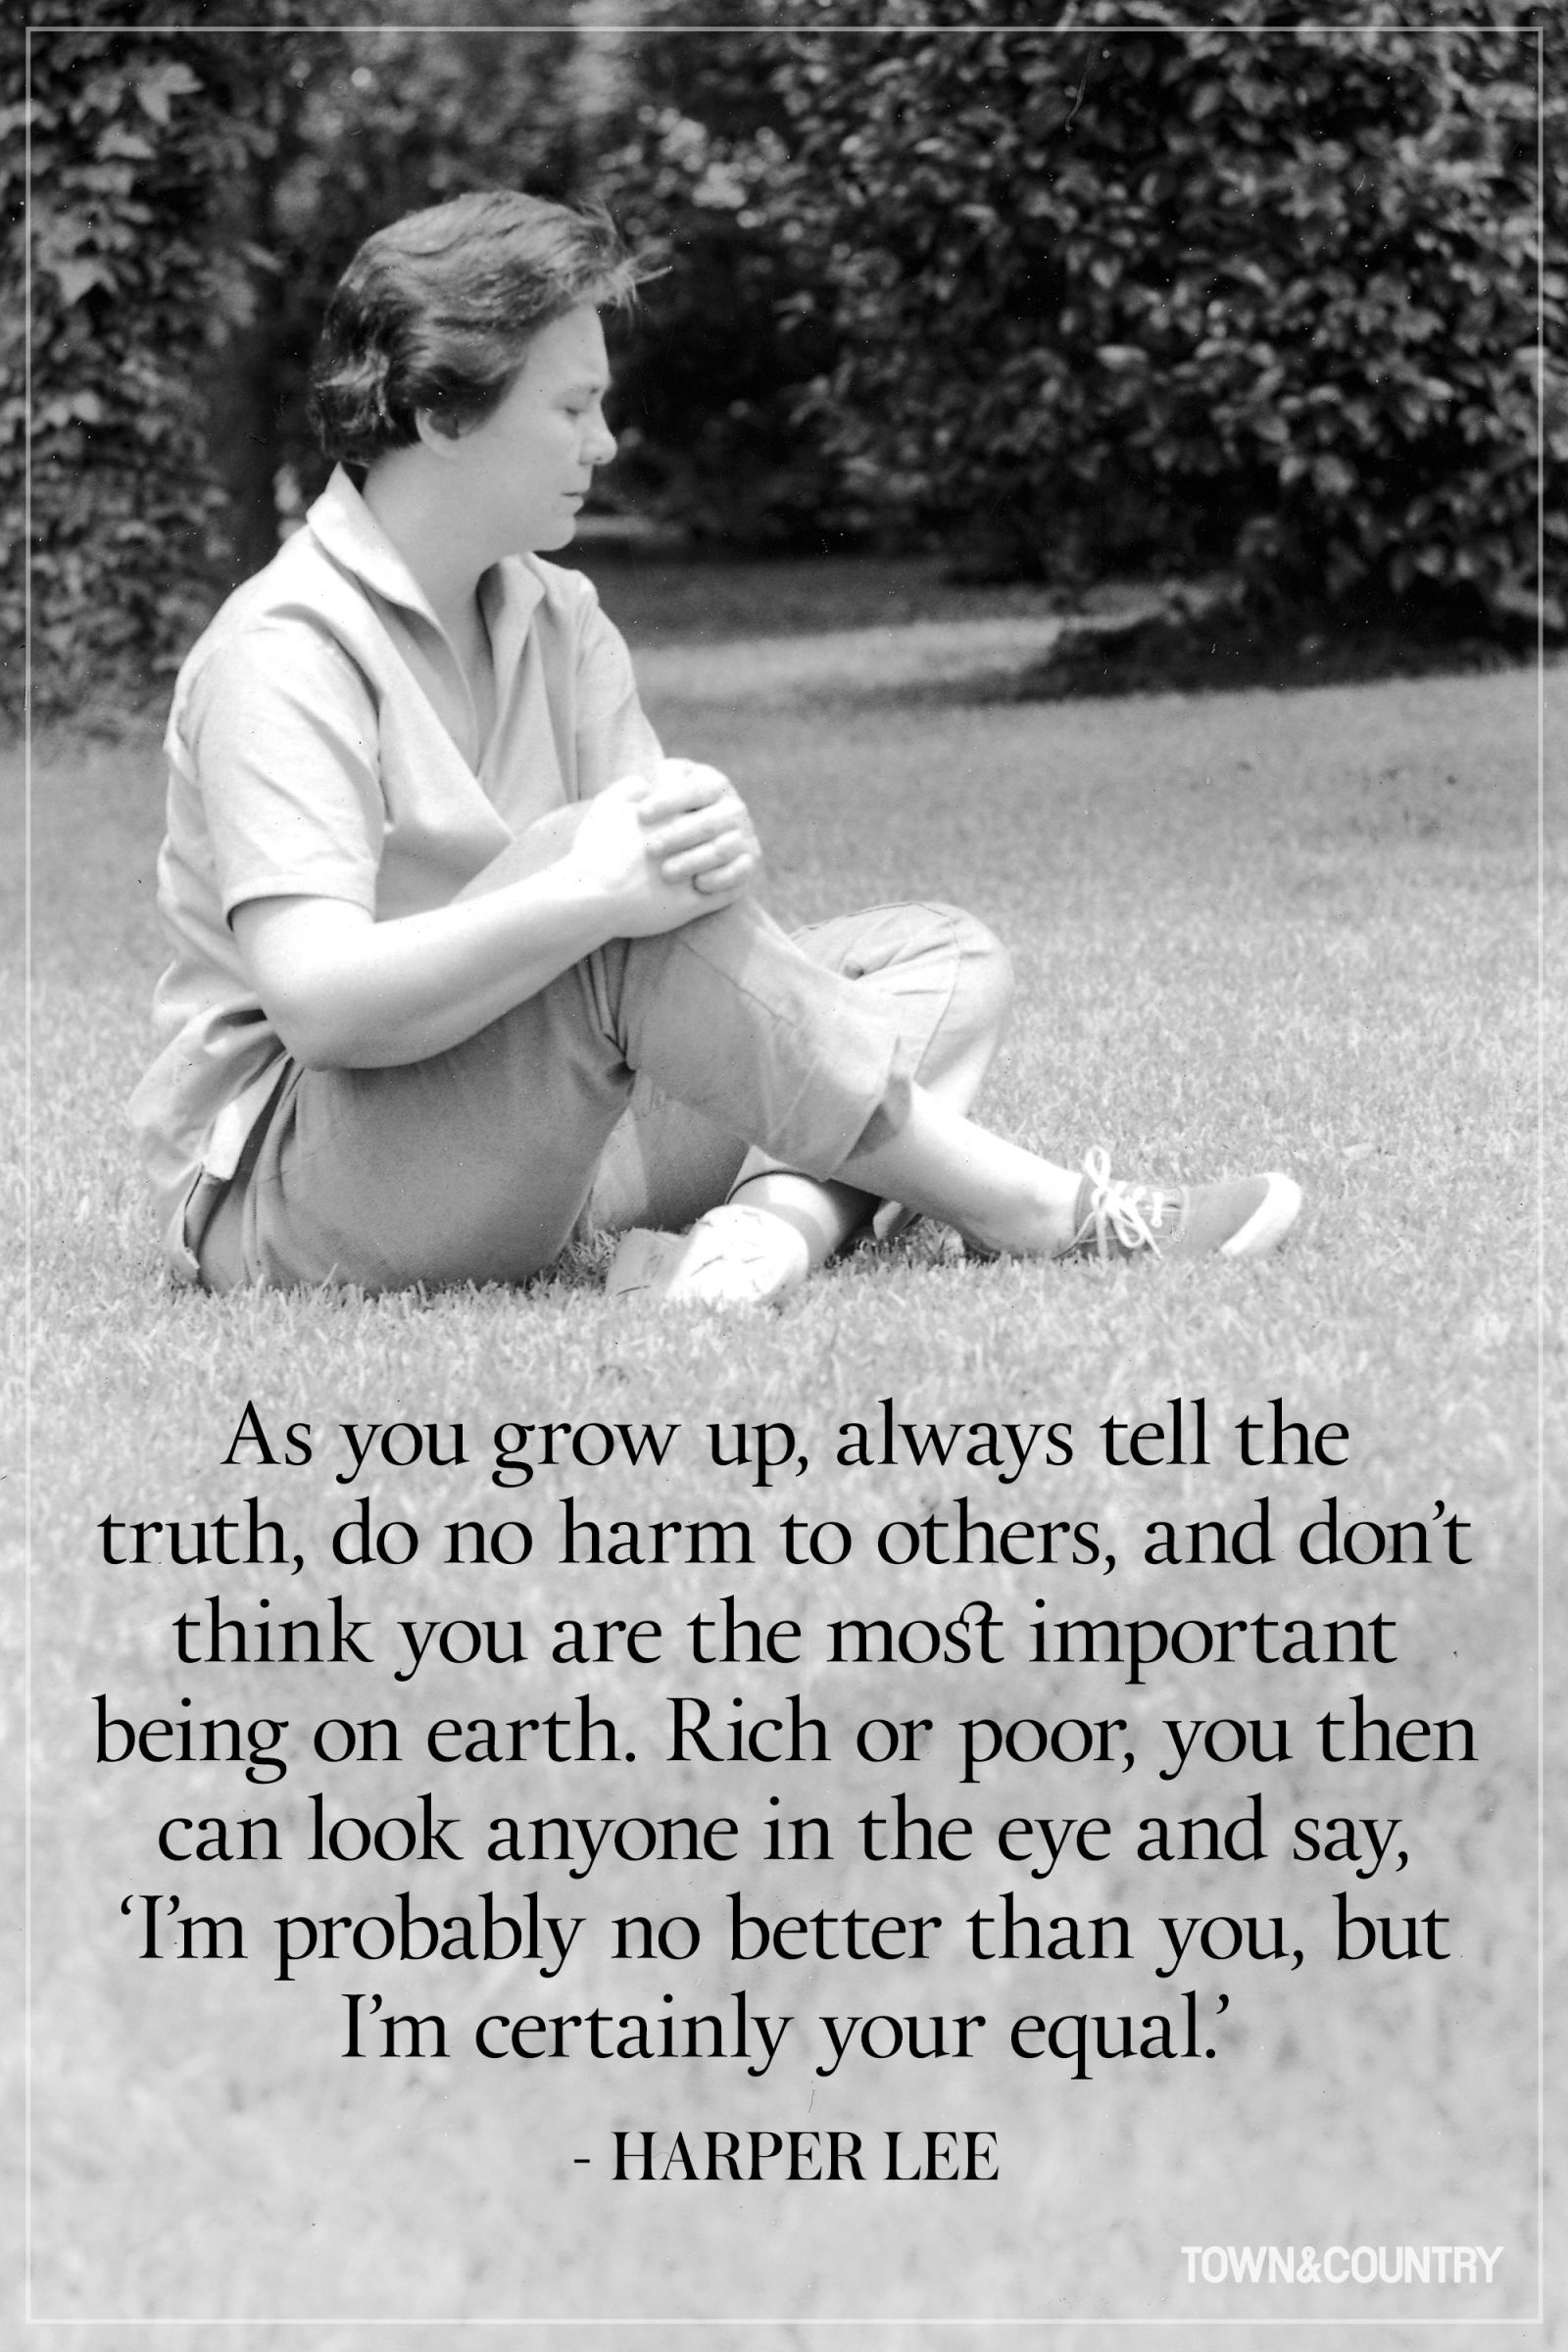 In Loving Memory Quotes Loving Memory Of Harper Lee The Author's Best Quotes